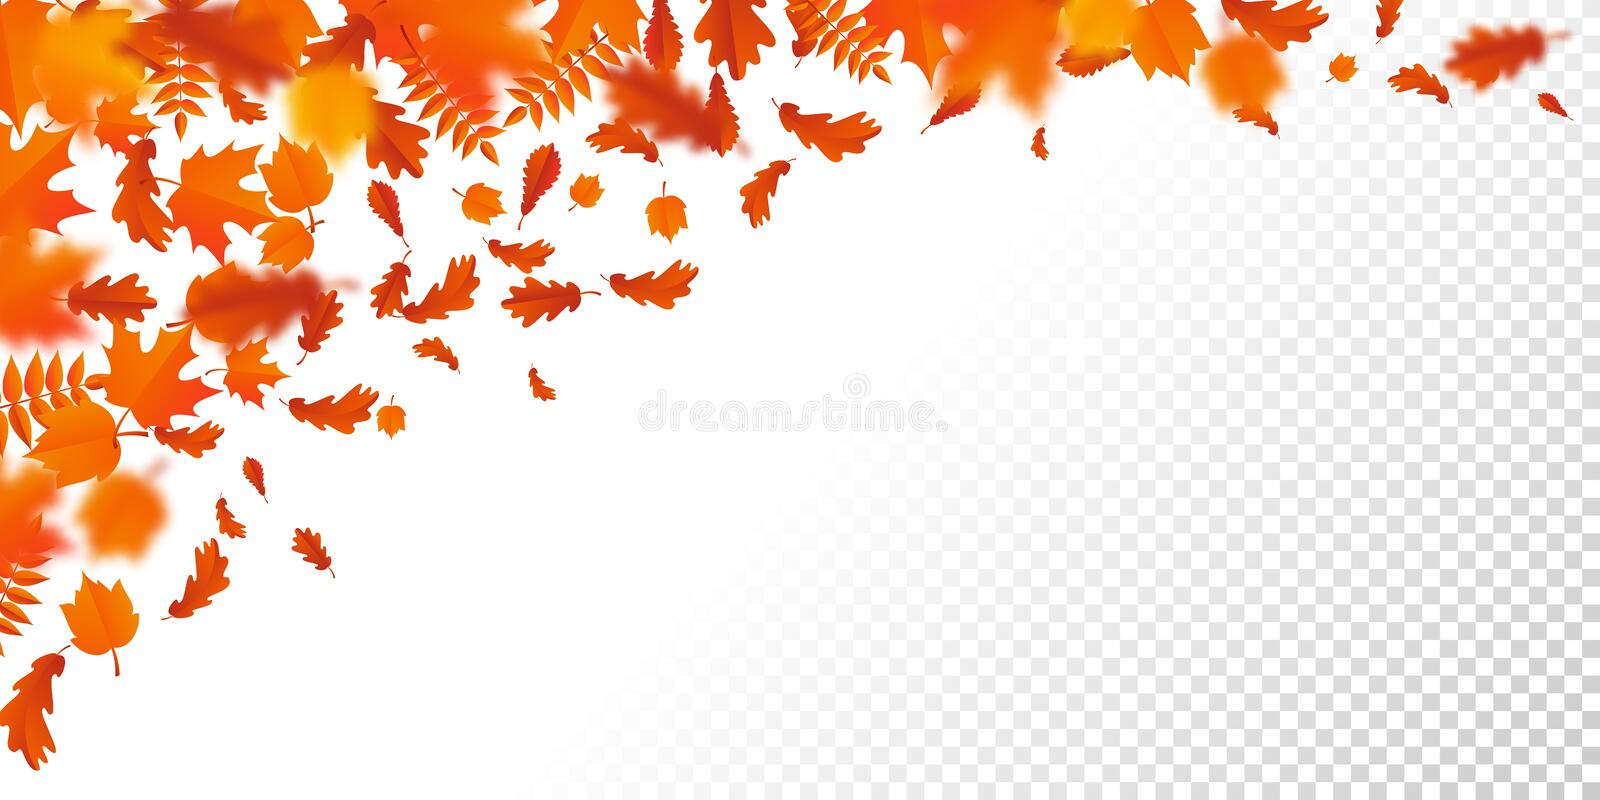 Autumn leaf fall pattern autumanl falling leaves on vector transparent background. Autumn leaf fall or autumnal falling leaves pattern on transparent background vector illustration